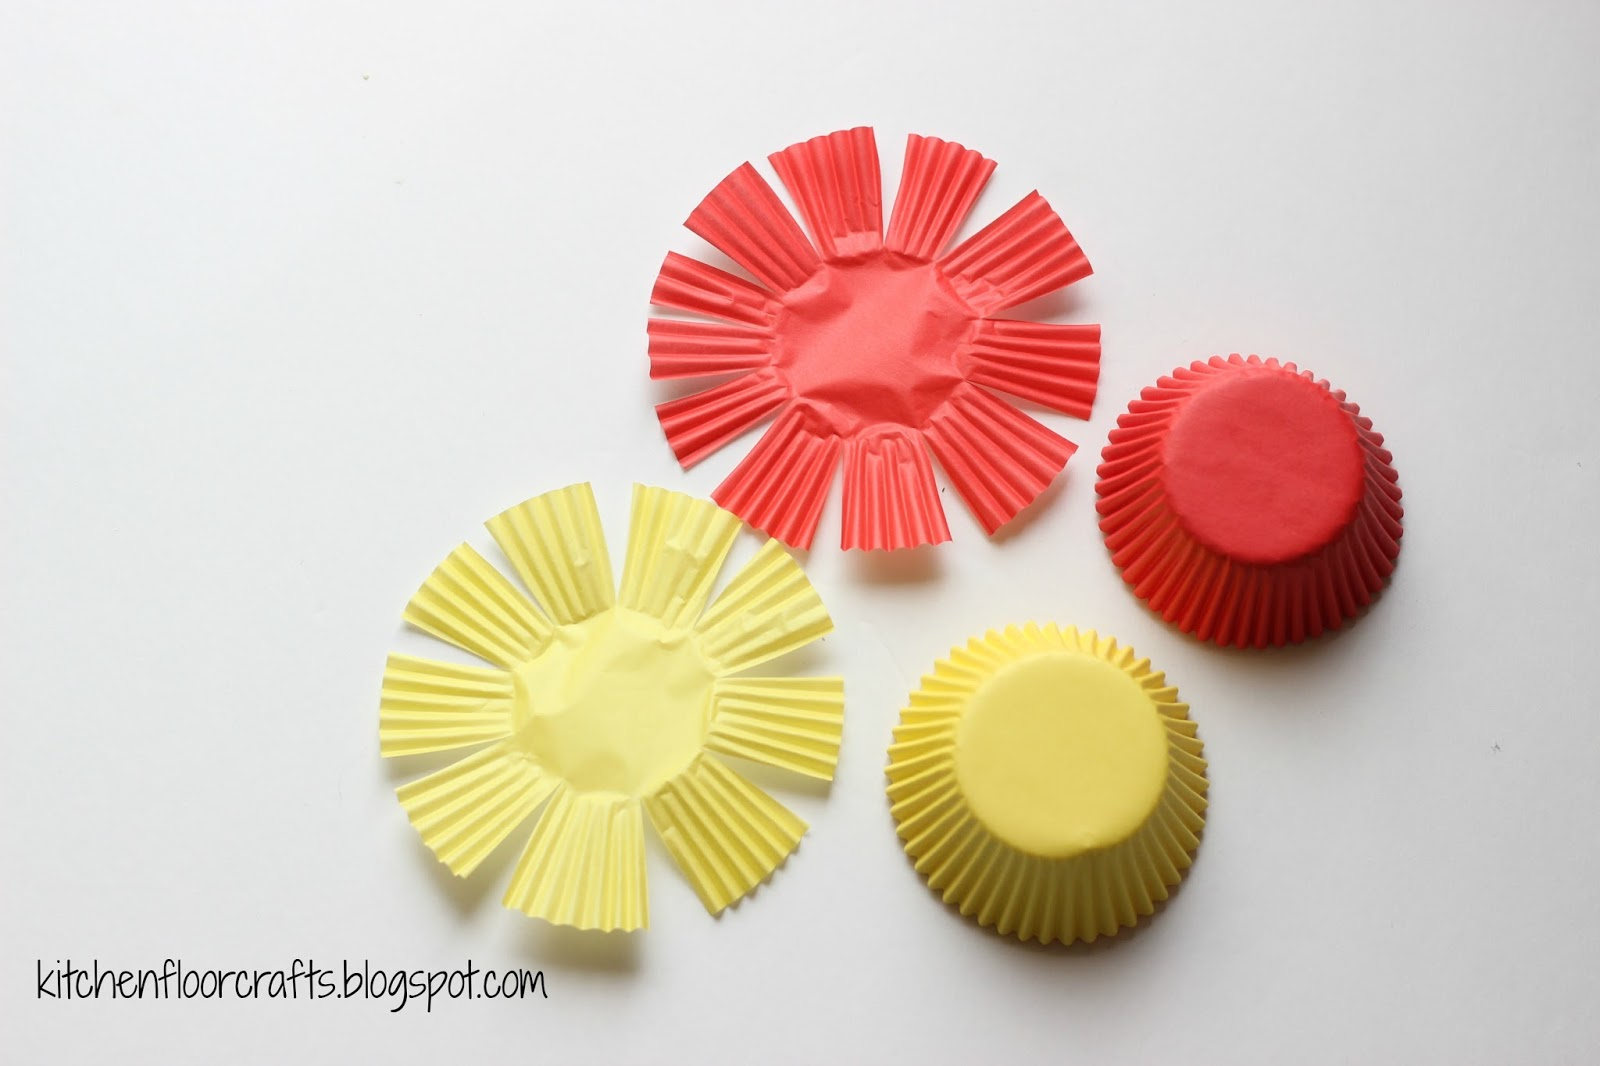 Kitchen Floor Crafts: Photograph Paper Plate Flowers